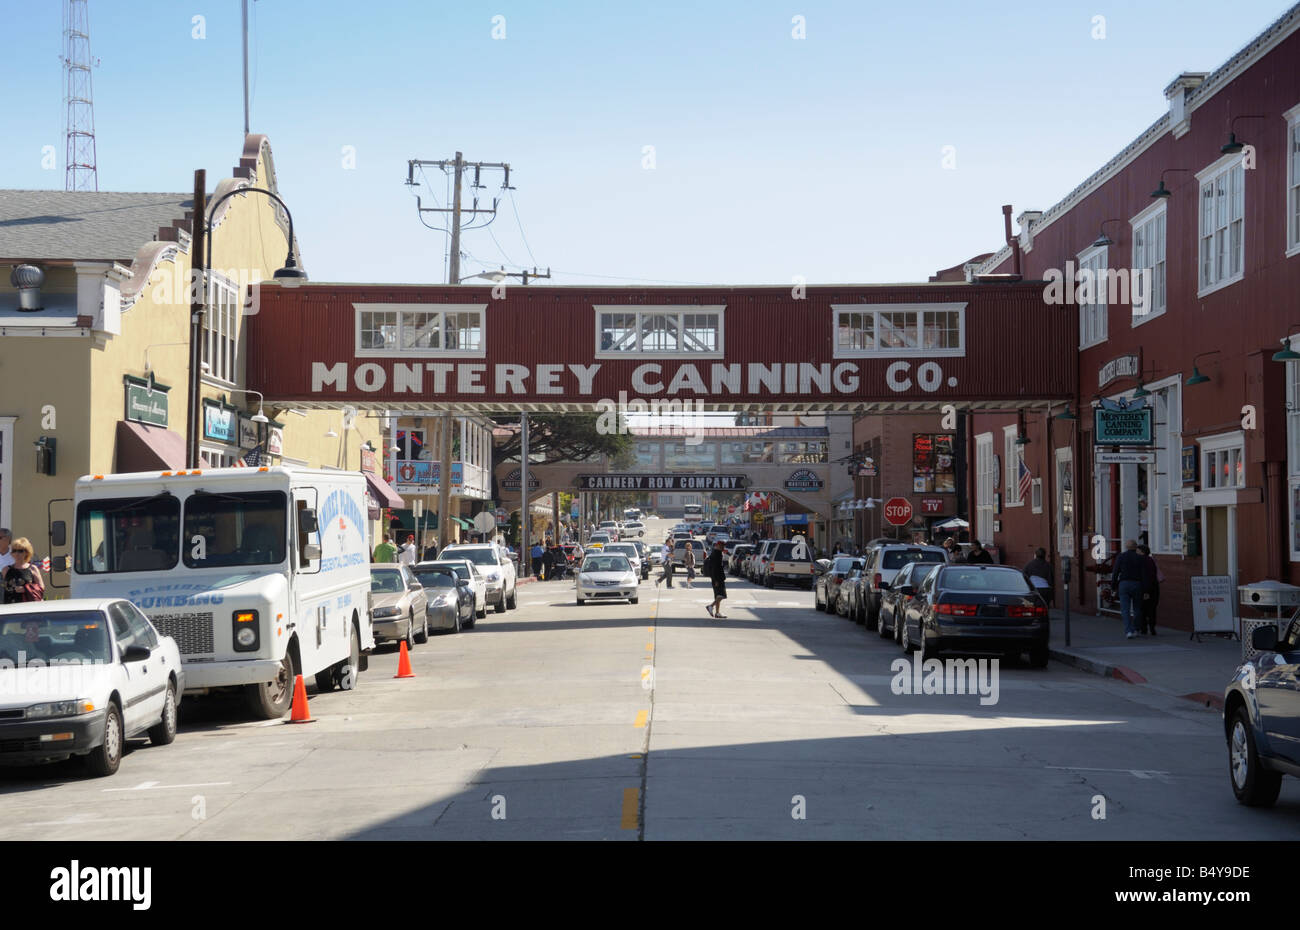 Cannery Row, Monterey California, made famous by novelist John Steinbeck. Now a tourist area. - Stock Image